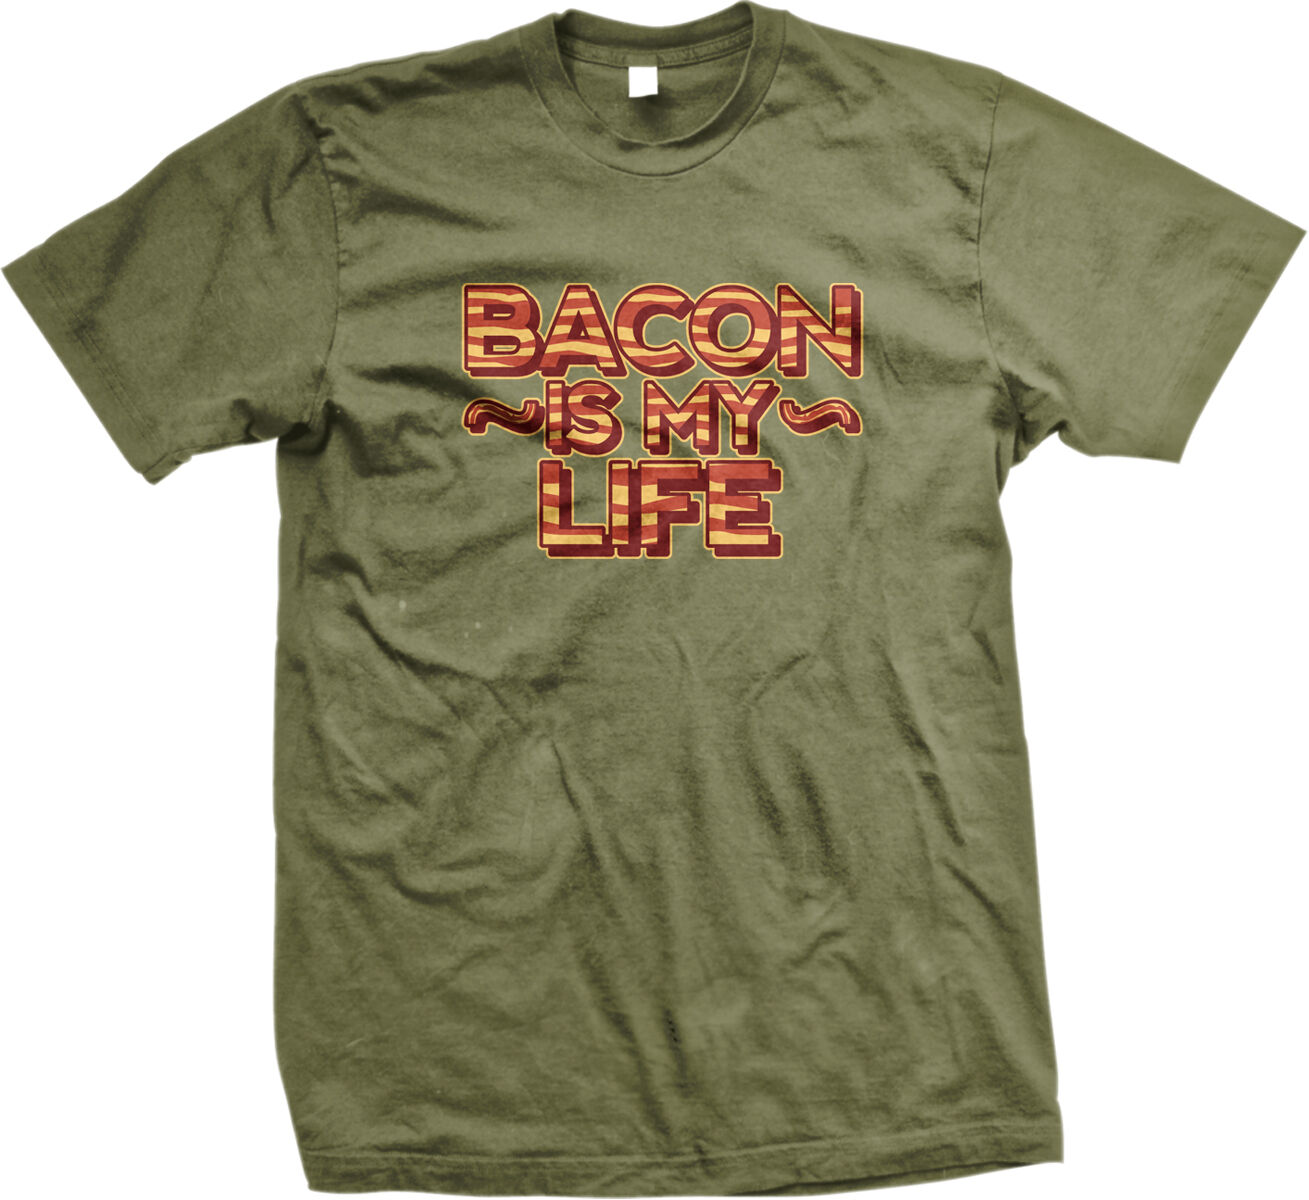 Bacon Pig Outline BBQ Barbecue Paleo Meat Candy Breakfast Mens V-neck T-shirt